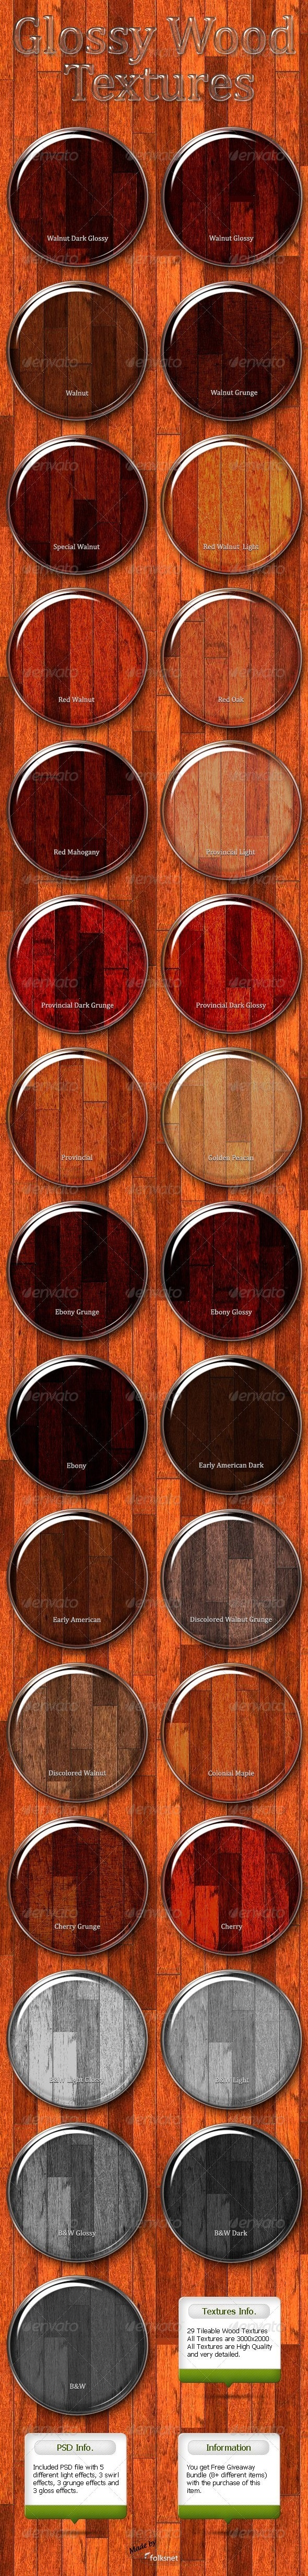 Glossy Wood Textures - Wood Textures